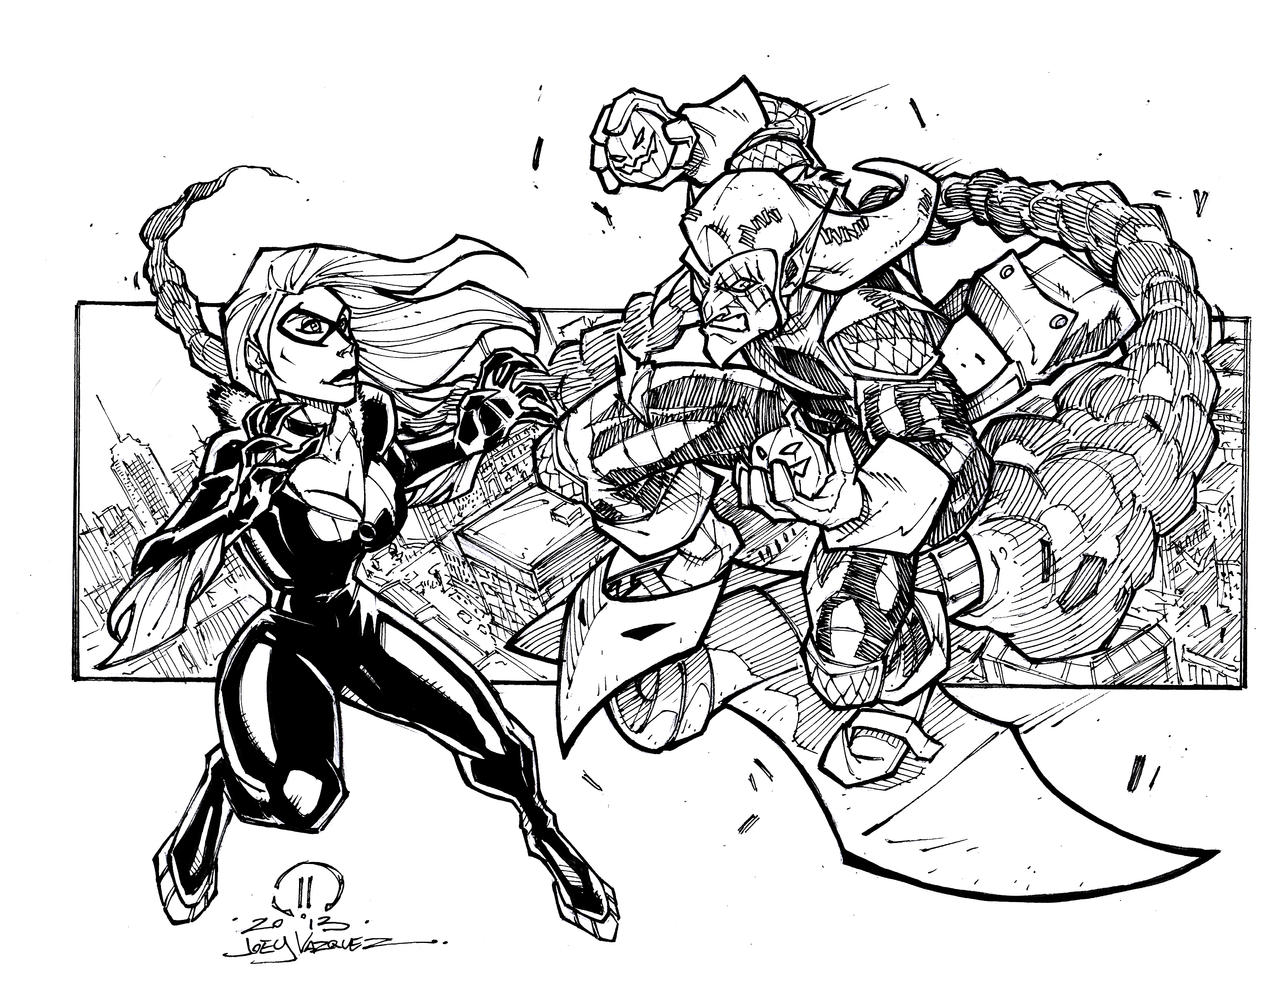 Black cat vs green goblin sketch by joeyvazquez on deviantart for Green goblin coloring pages